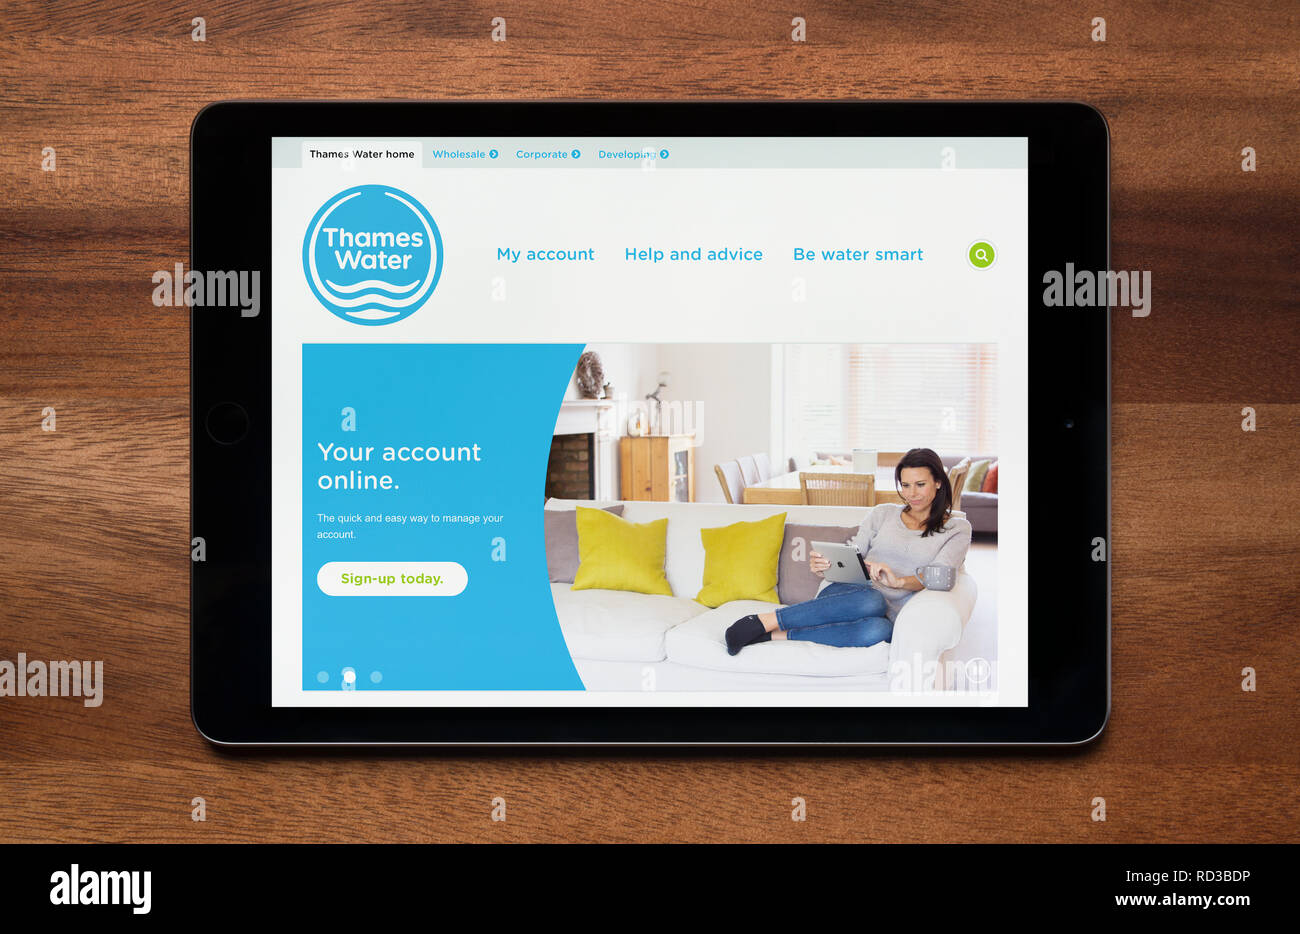 The website of Thames Water is seen on an iPad tablet, which is resting on a wooden table (Editorial use only). - Stock Image